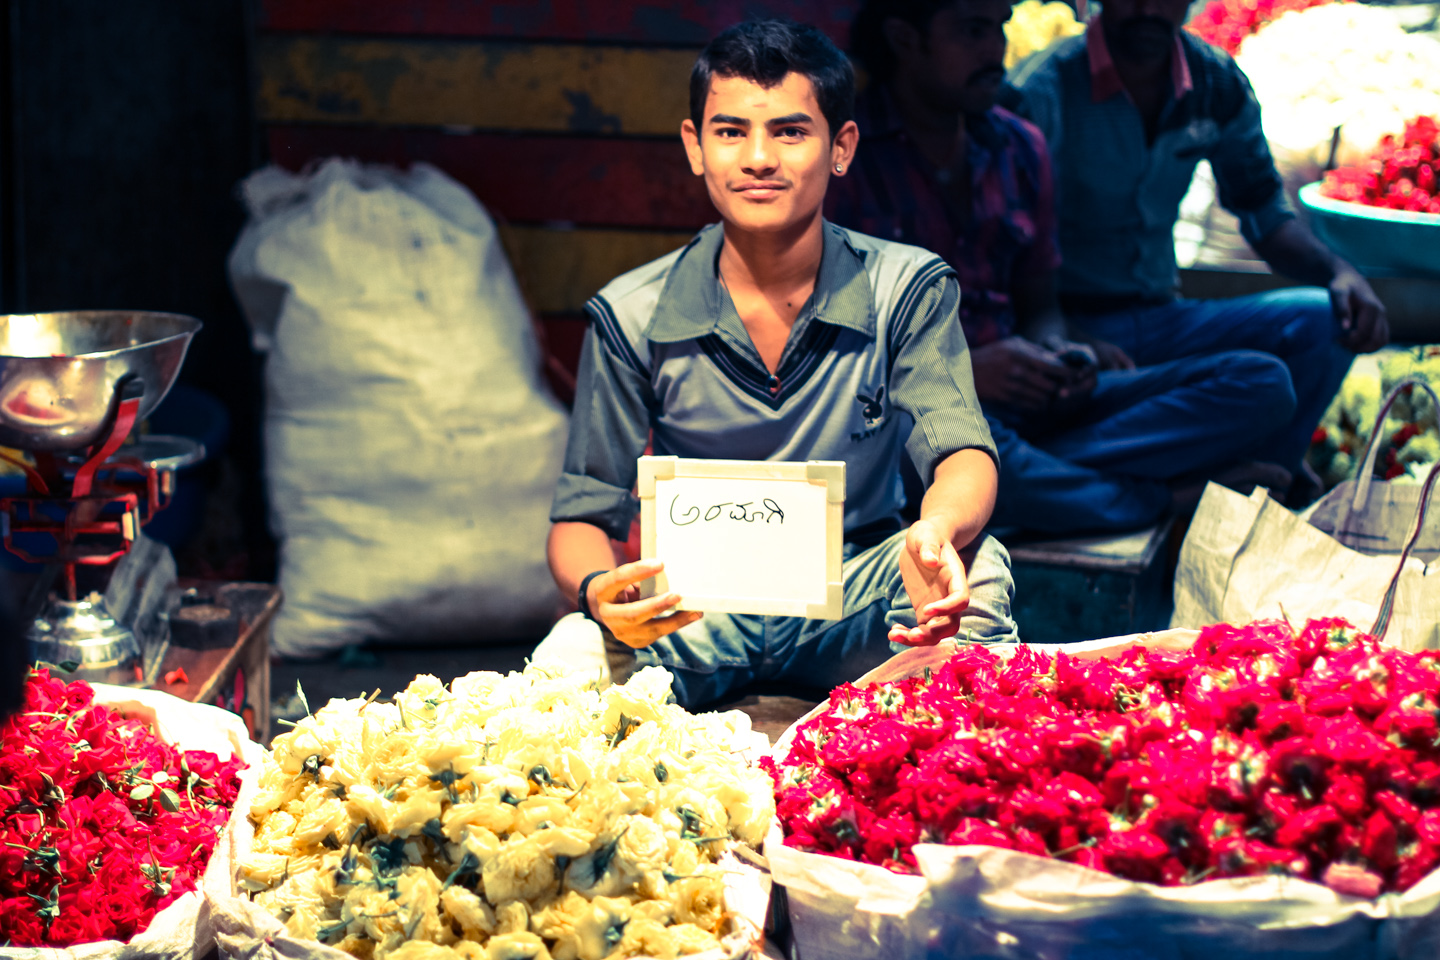 Eighteen-year-old Sashikumar sells roses in Bangalore's City Market. He cannot leave his merchandise, so he relies on the chai wallahs who weave in and out of piles of flowers to bring him chai throughout the day.